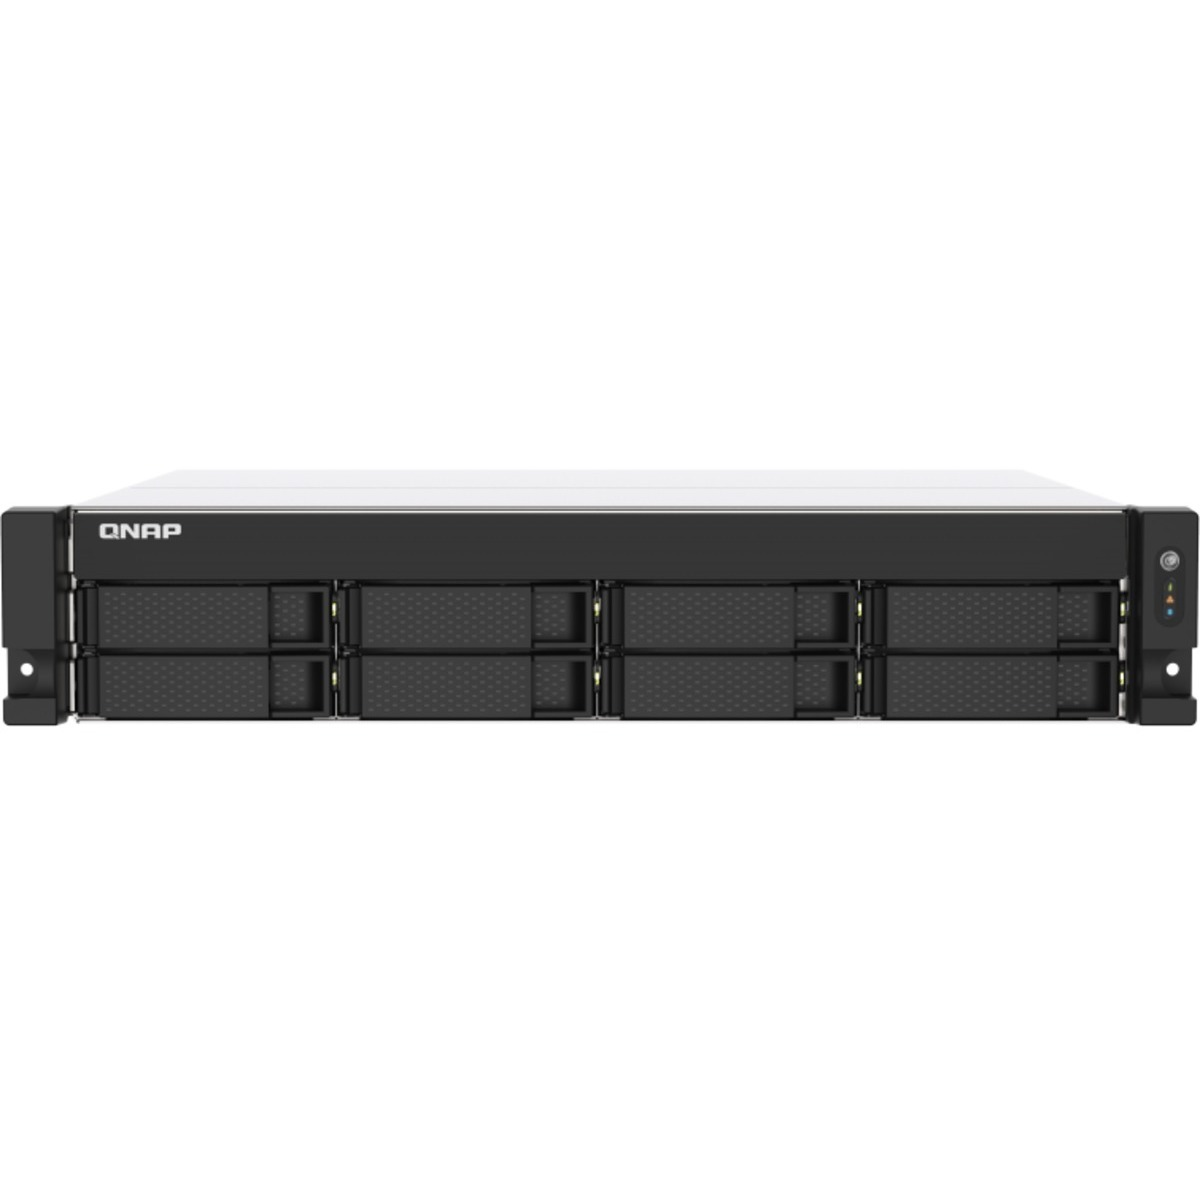 buy $4875 QNAP TS-853DU-RP 96tb RackMount NAS - Network Attached Storage Device 8x12000gb Seagate IronWolf ST12000VN0008 3.5 7200rpm SATA 6Gb/s HDD NAS Class Drives Installed - Burn-In Tested - FREE RAM UPGRADE - nas headquarters buy network attached storage server device das new raid-5 free shipping usa holiday new year clearance sale TS-853DU-RP